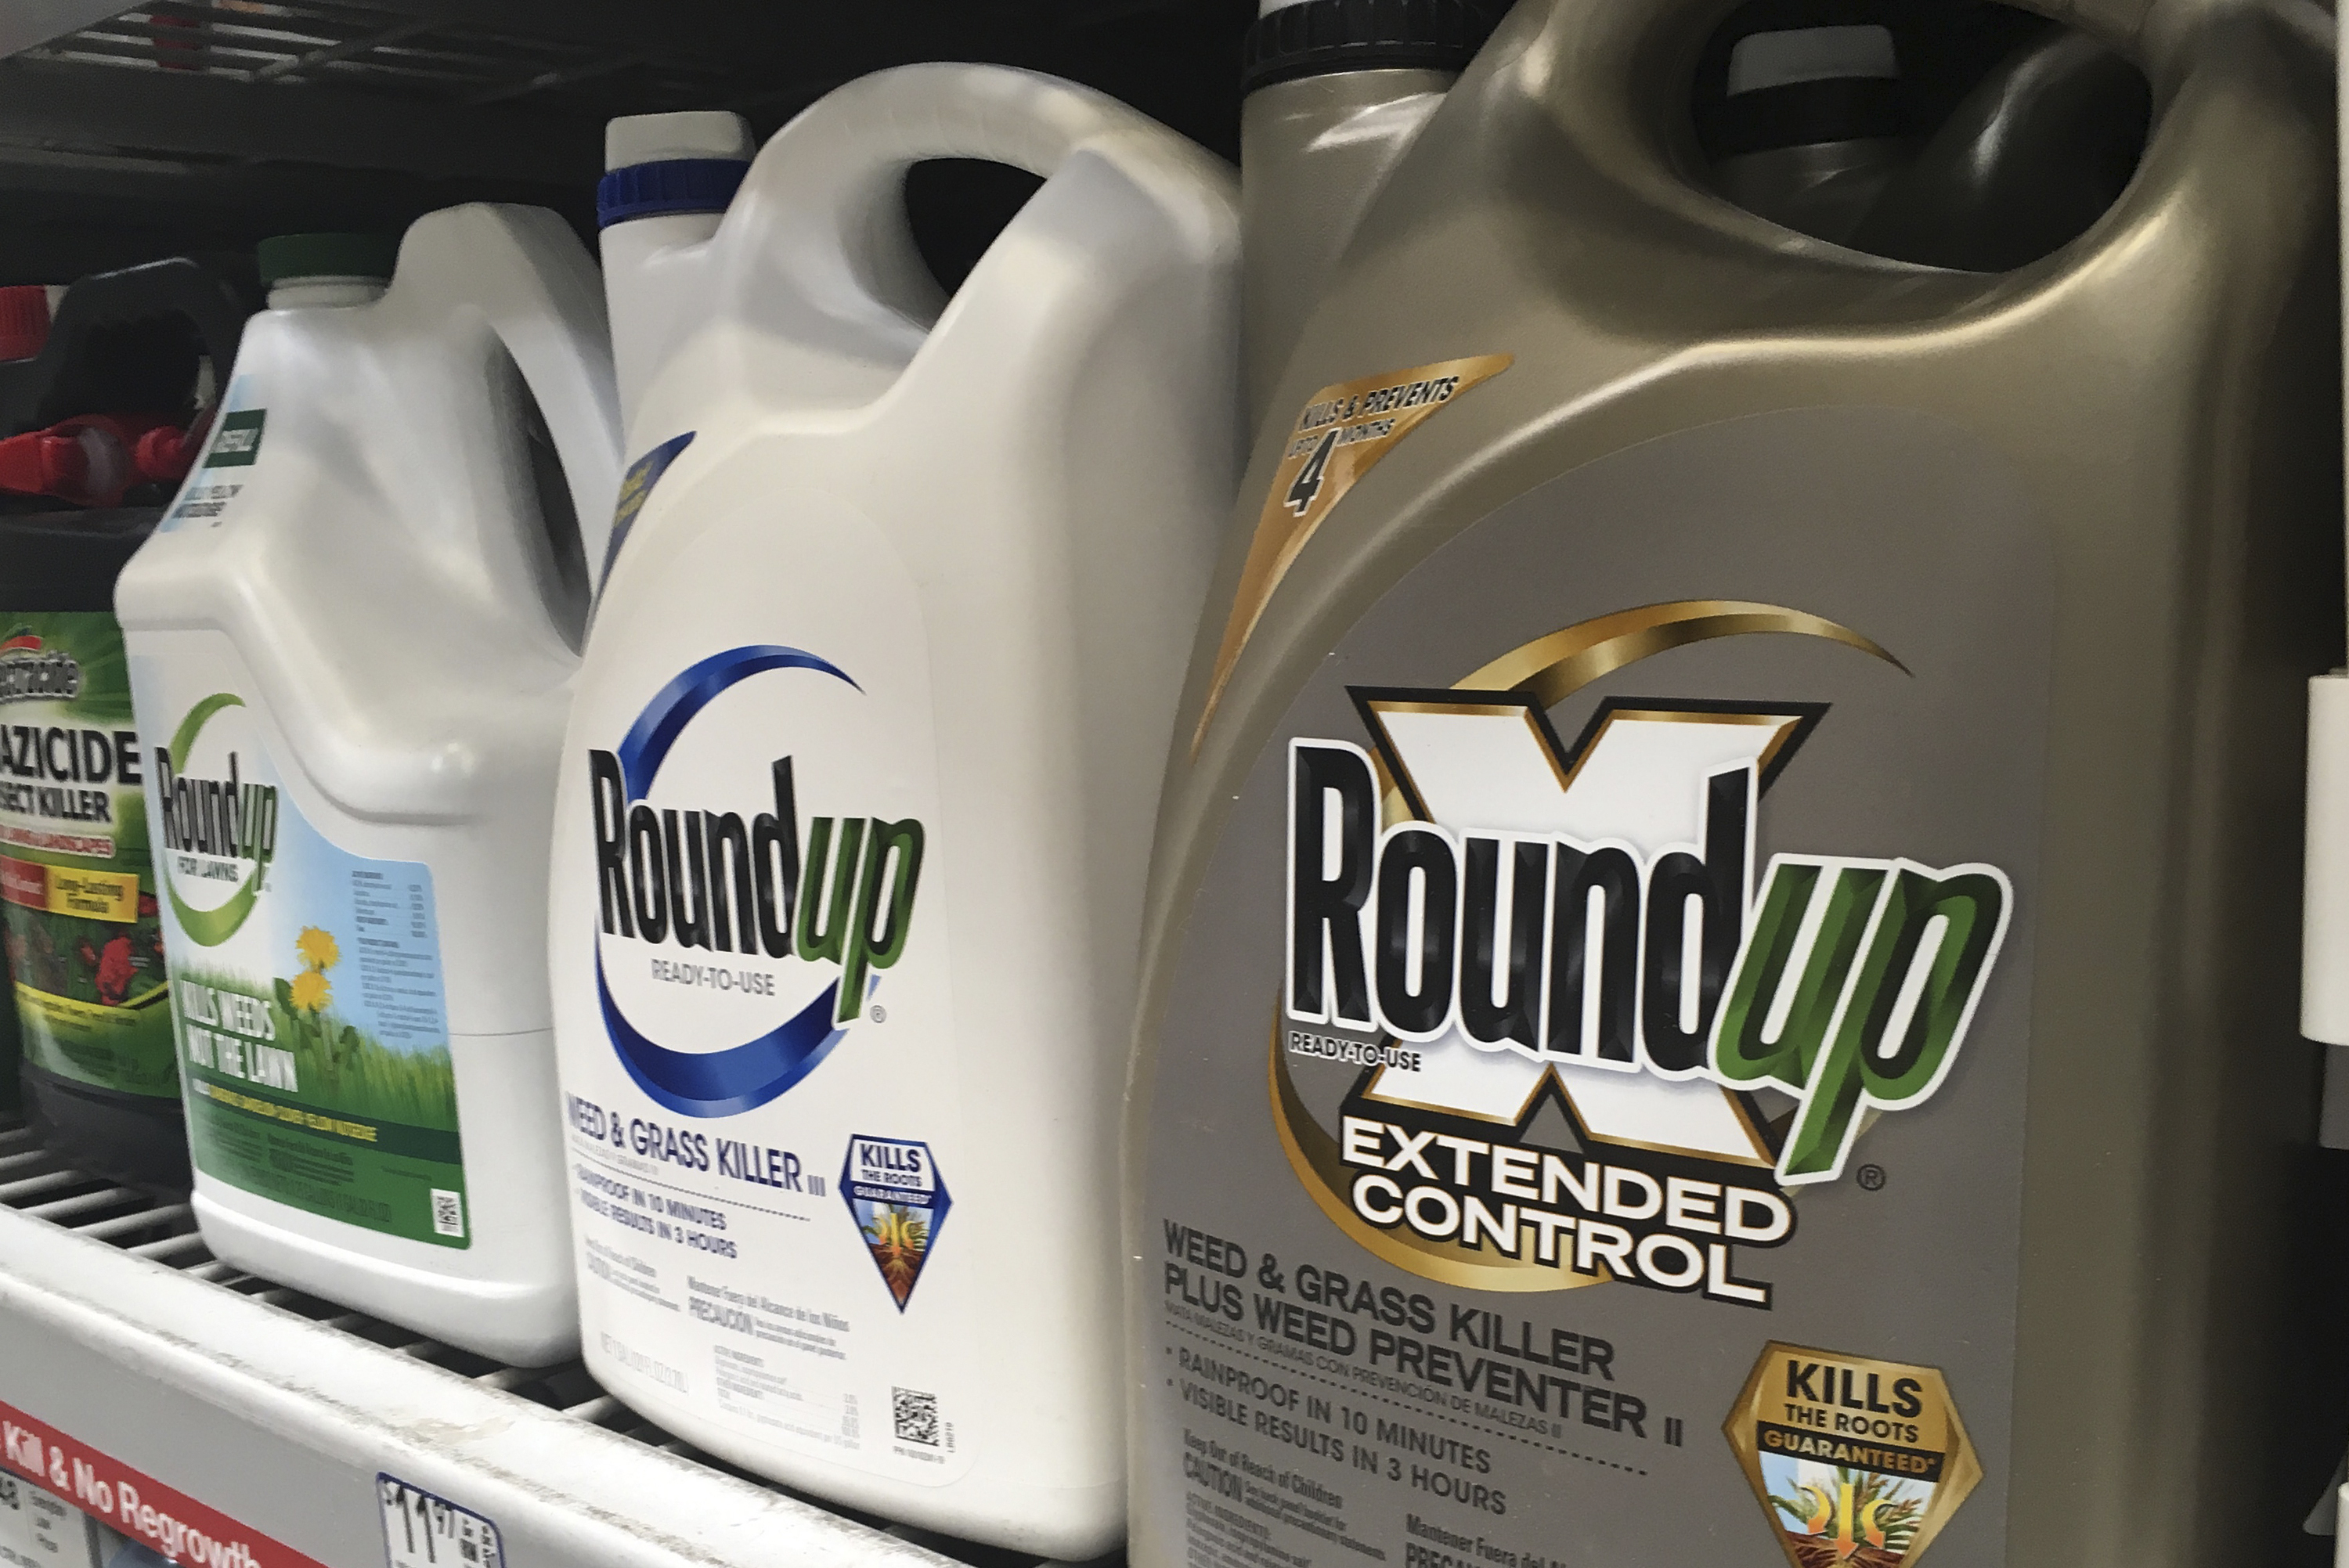 EPA wont approve warning labels for Roundup chemical